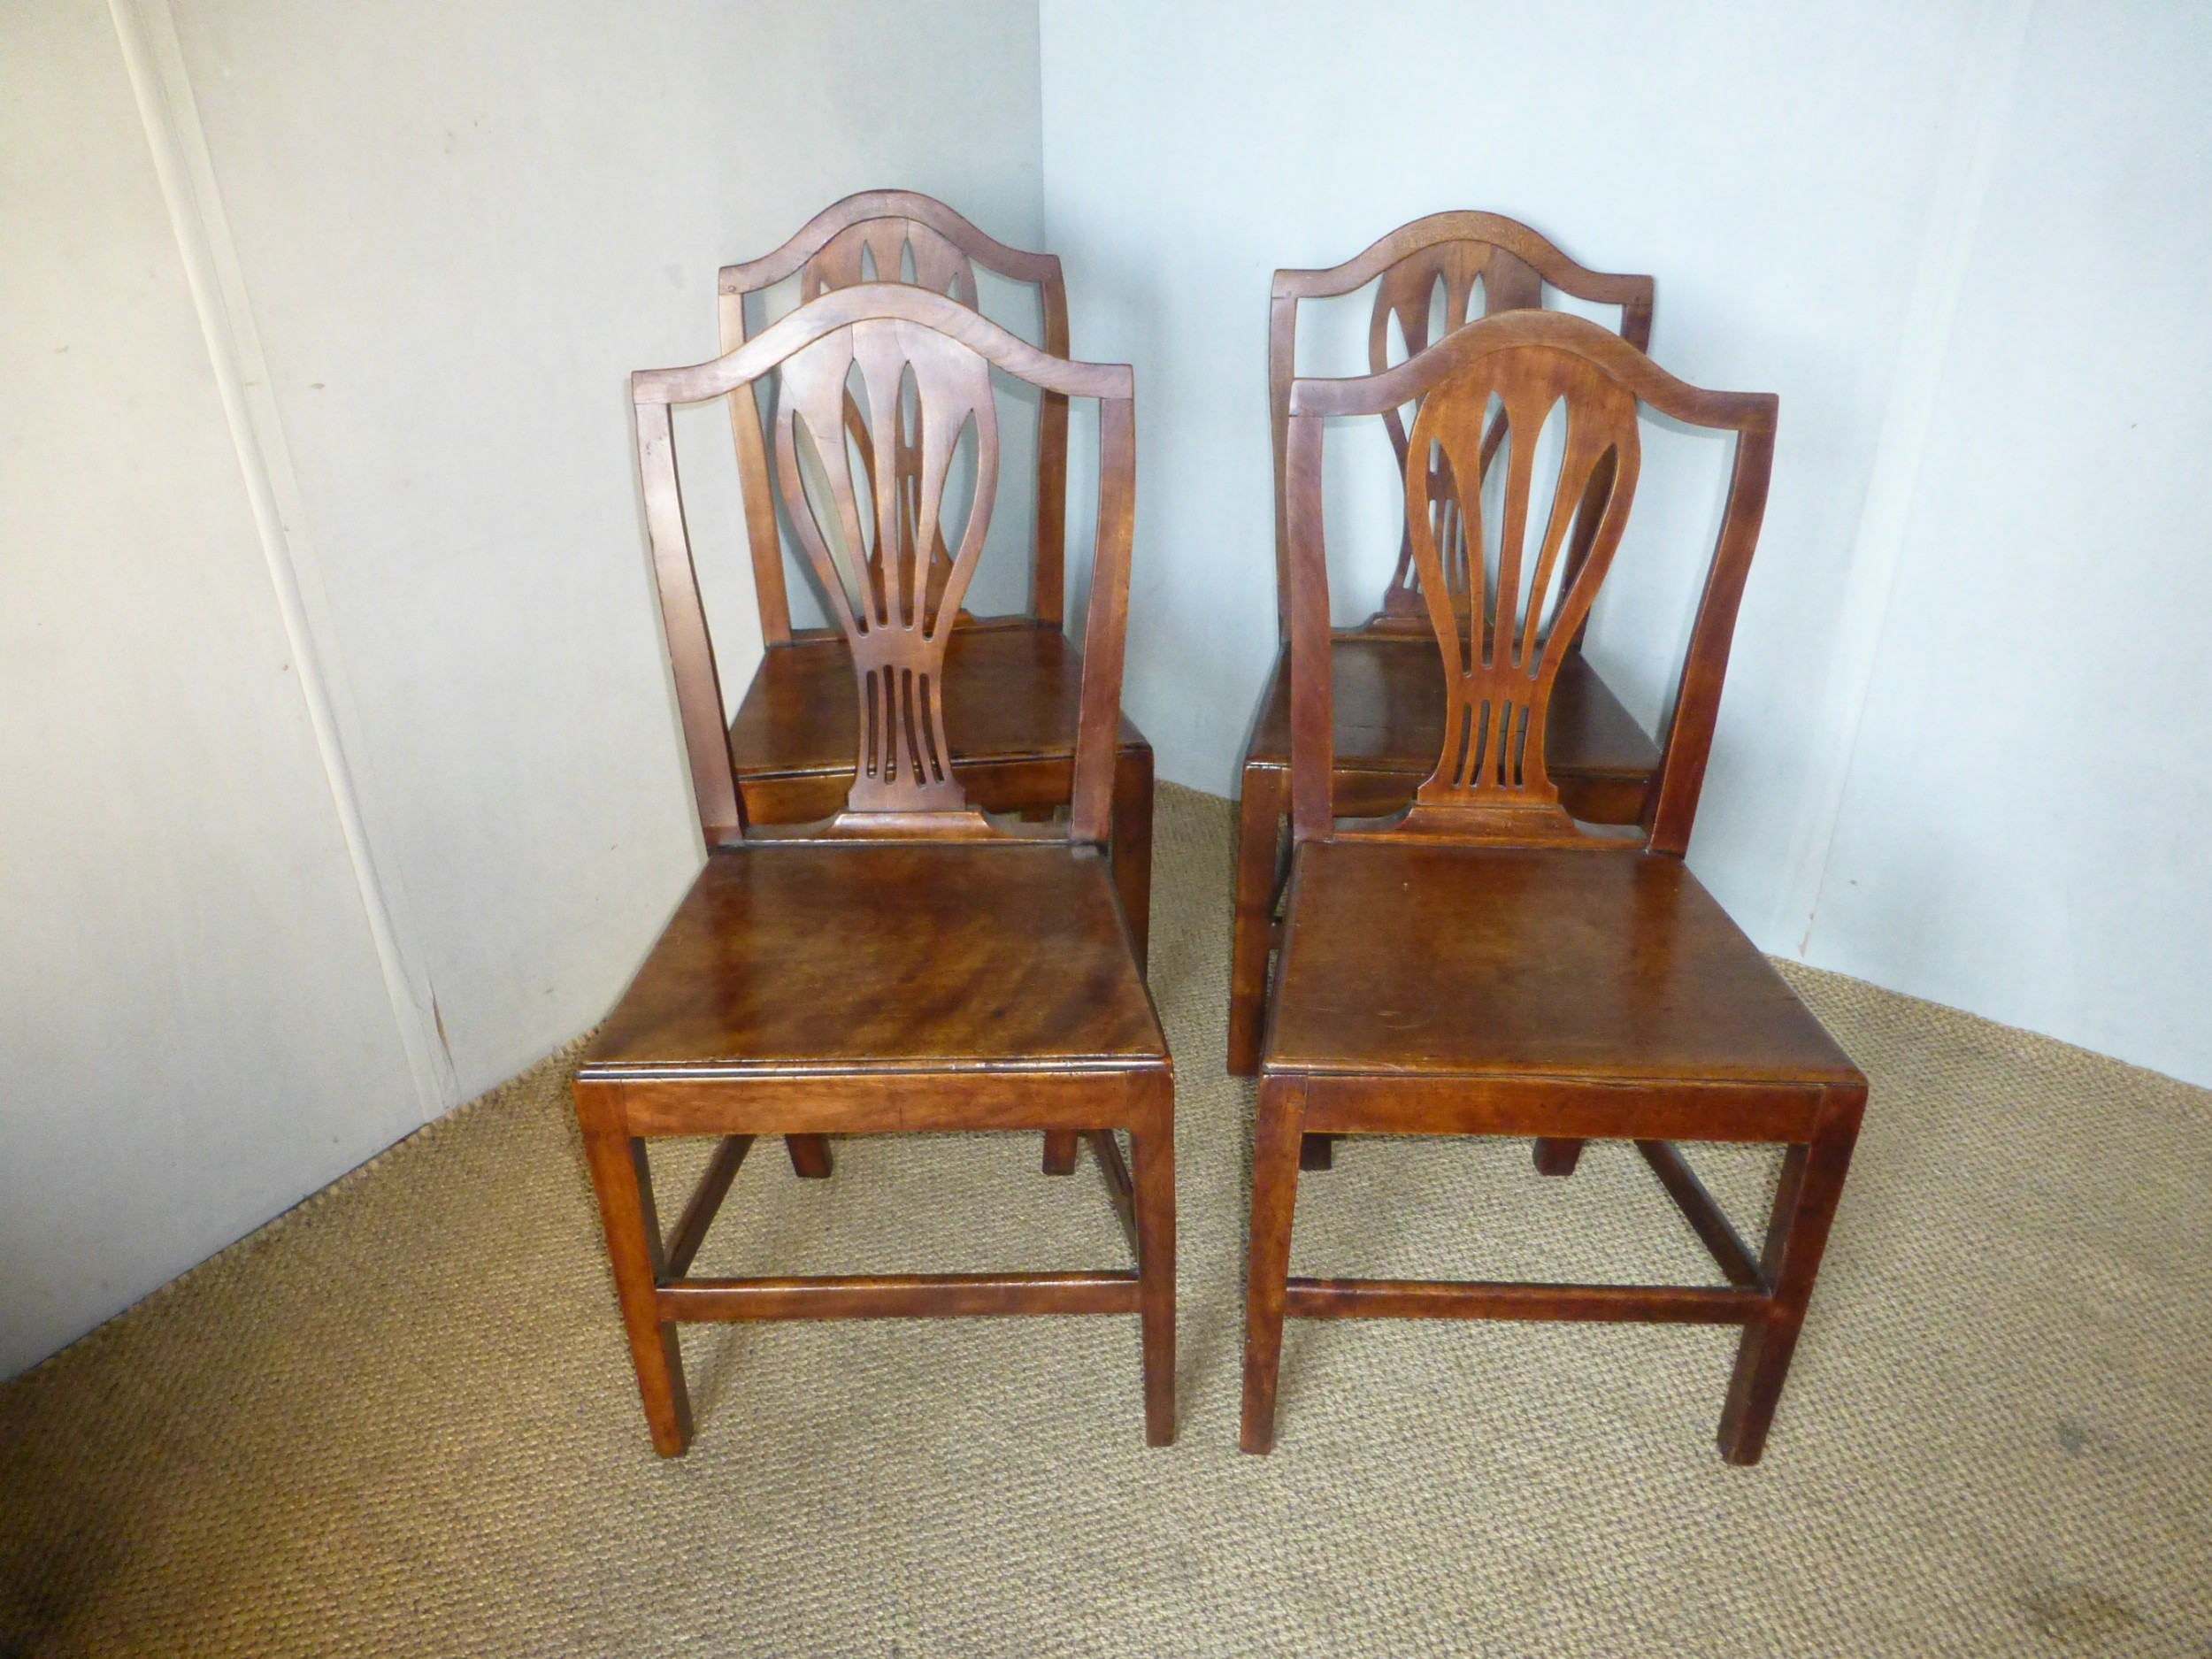 set of four 4 18th century georgian welsh oak and fruitwood farmhouse dining chairs c1790